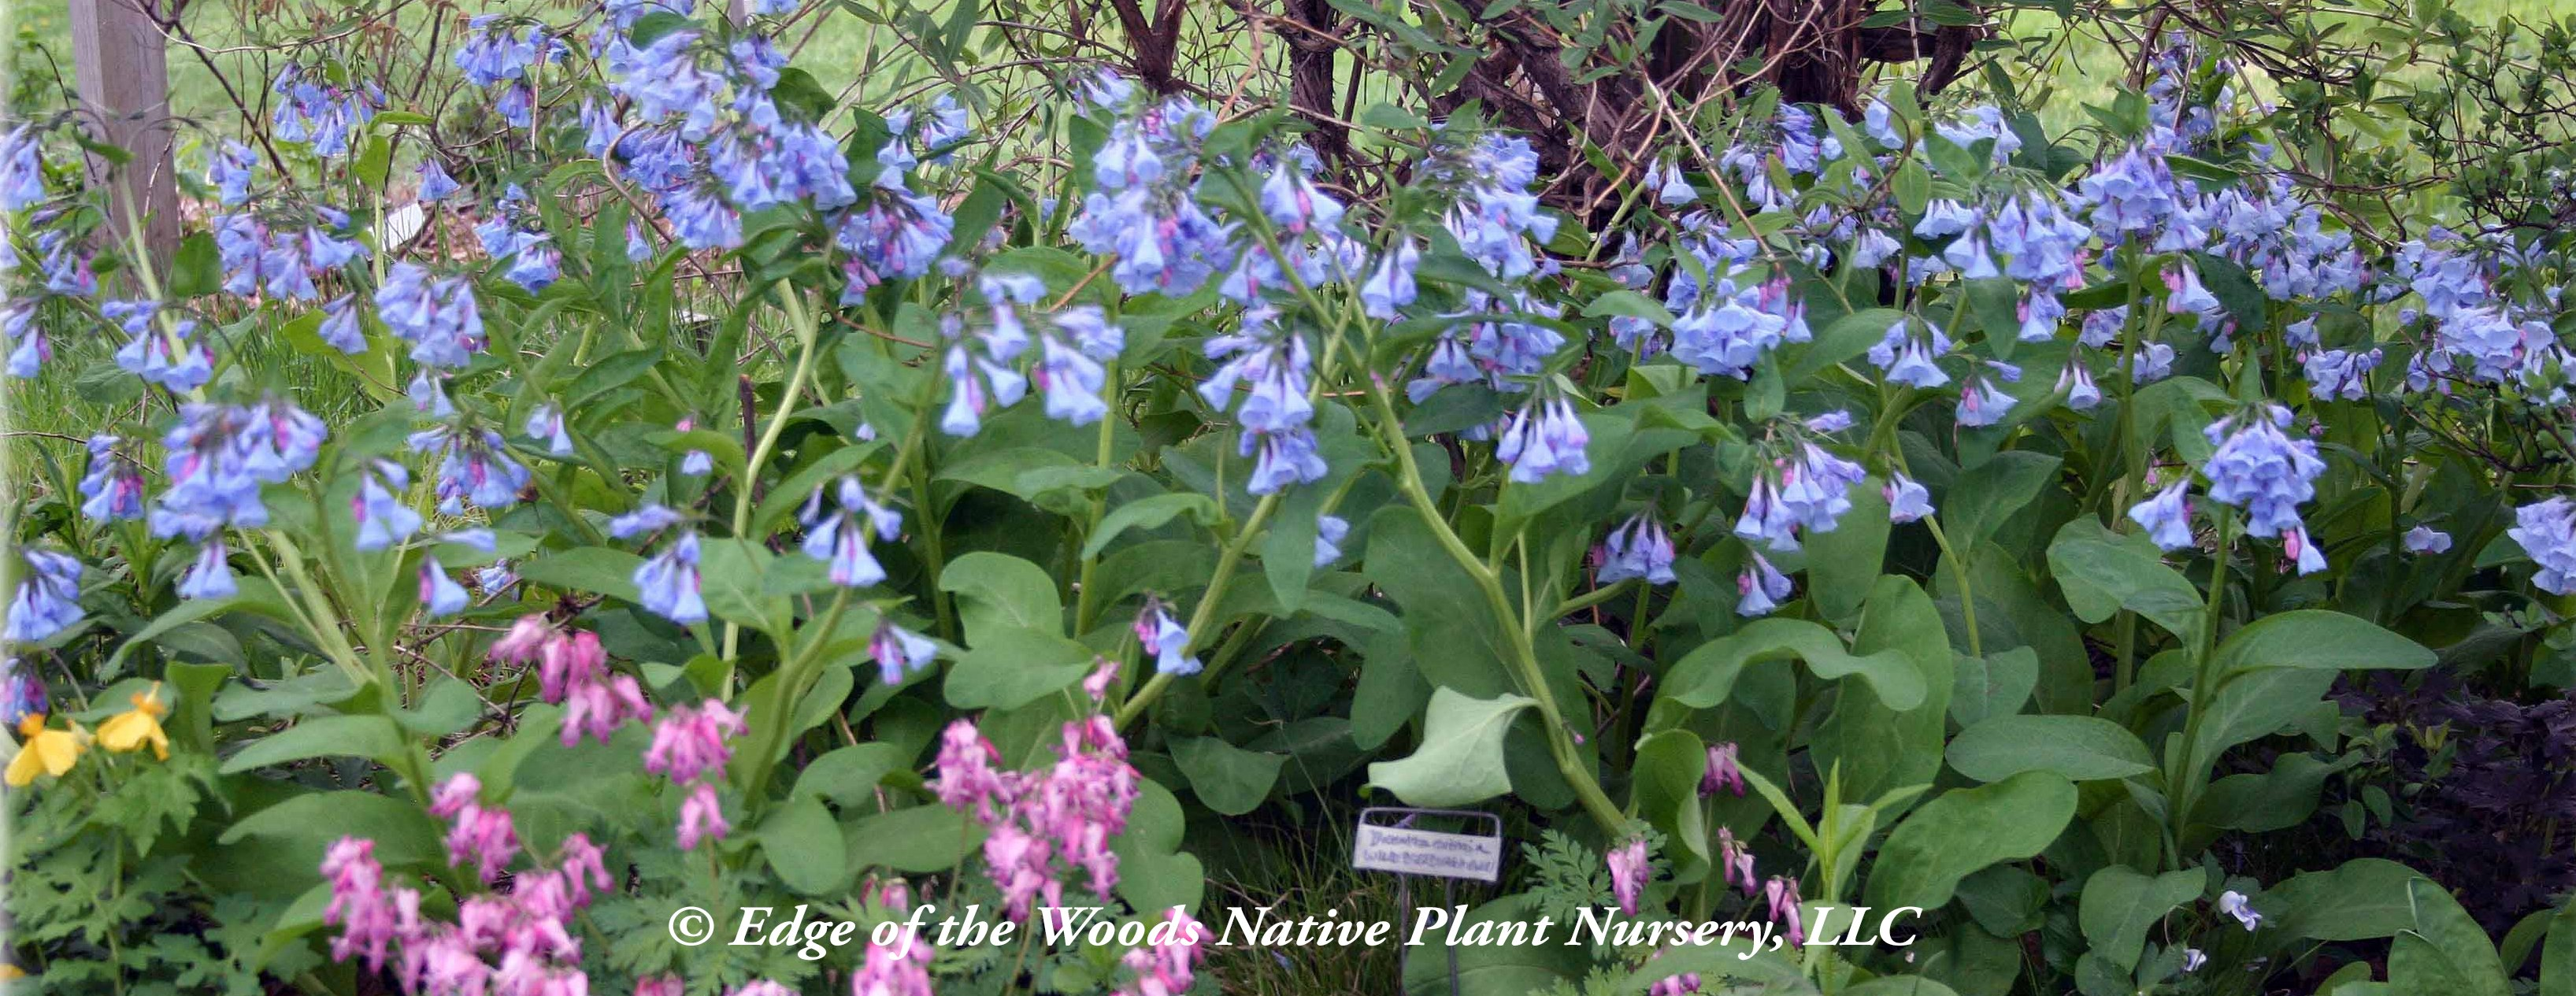 Thinking of Spring: The Spring Ephemerals | Edge Of The